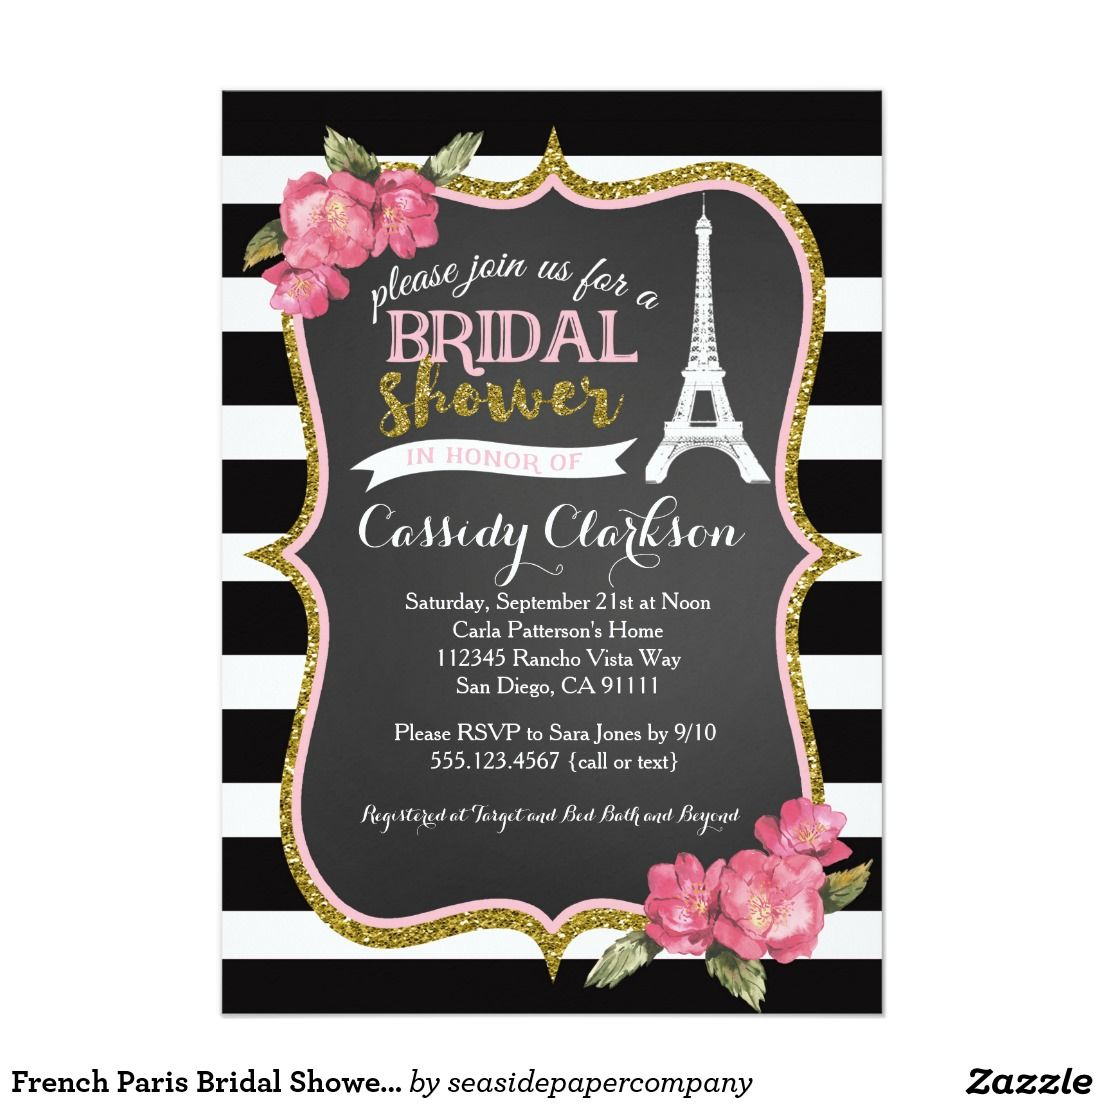 wedding party invitation message%0A French Paris Bridal Shower invitation